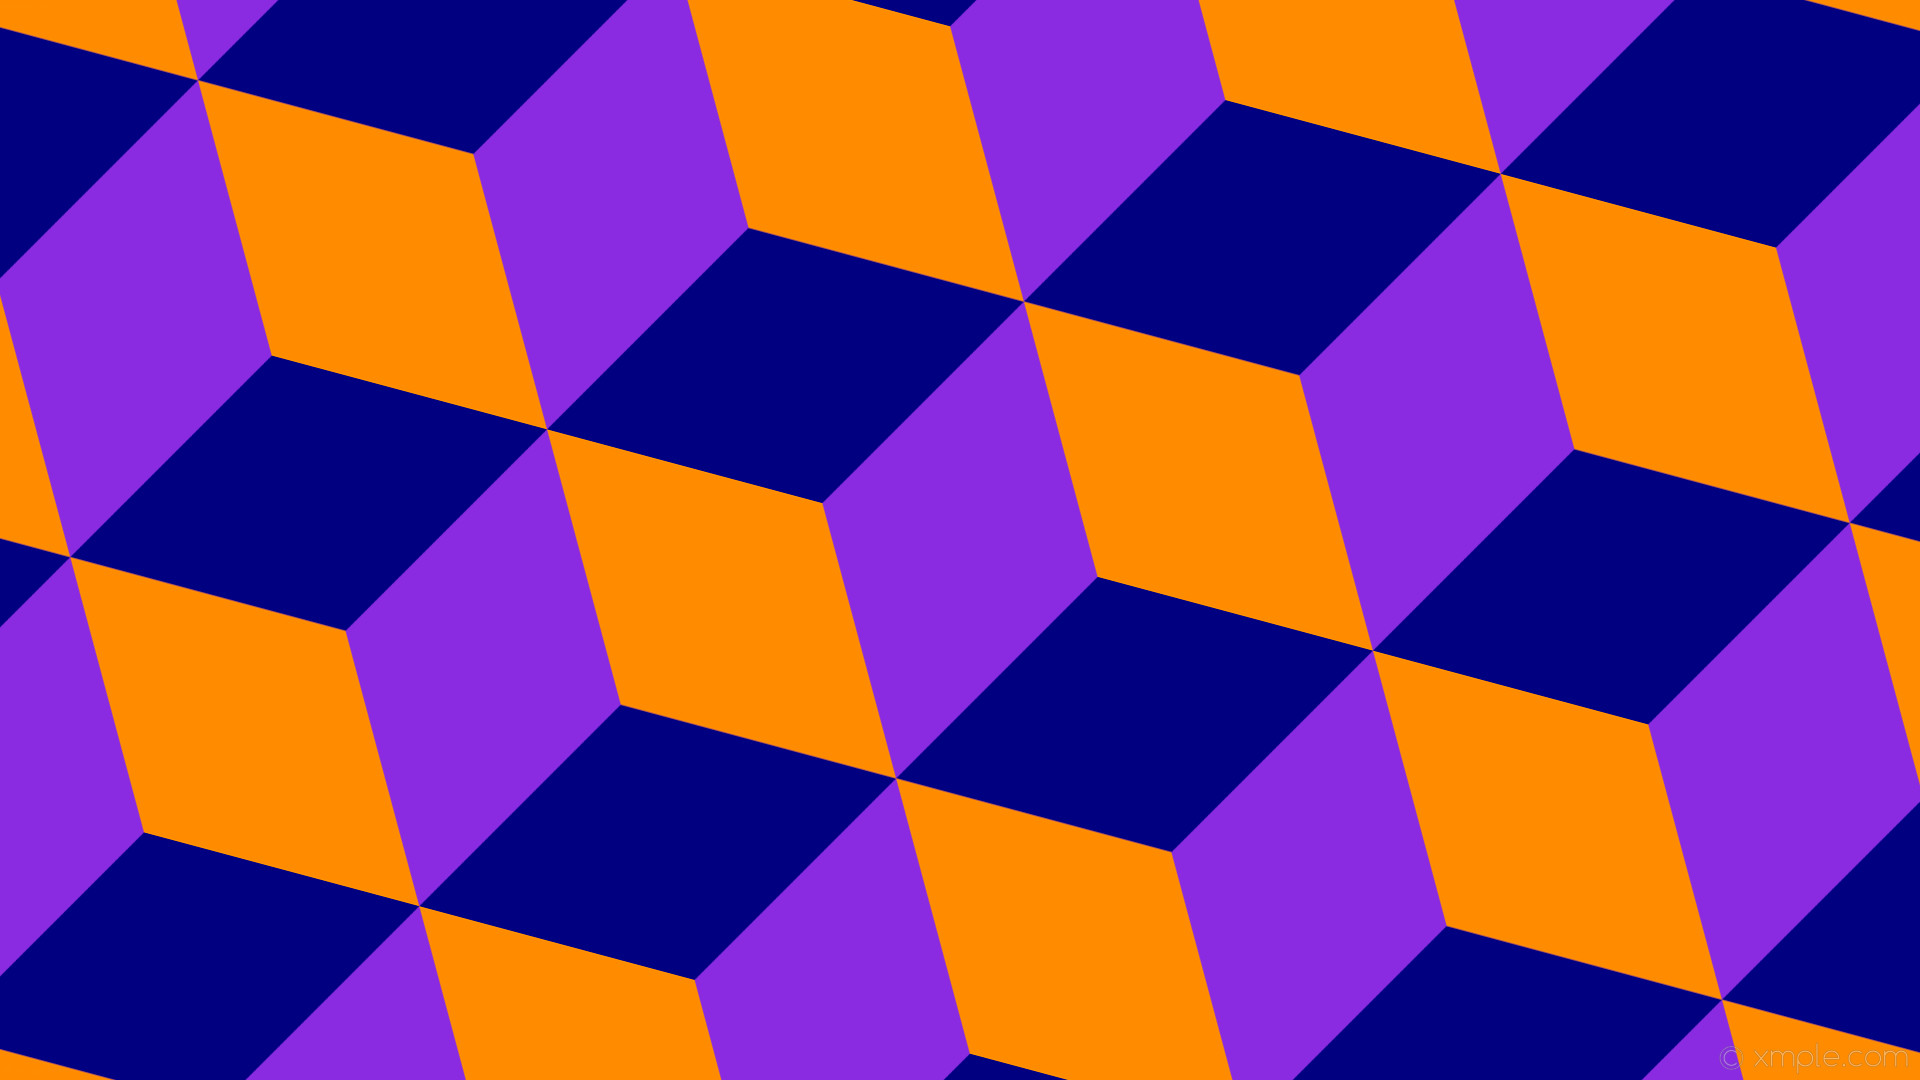 Low Poly Wallpaper Orange Purple By Bluhurr